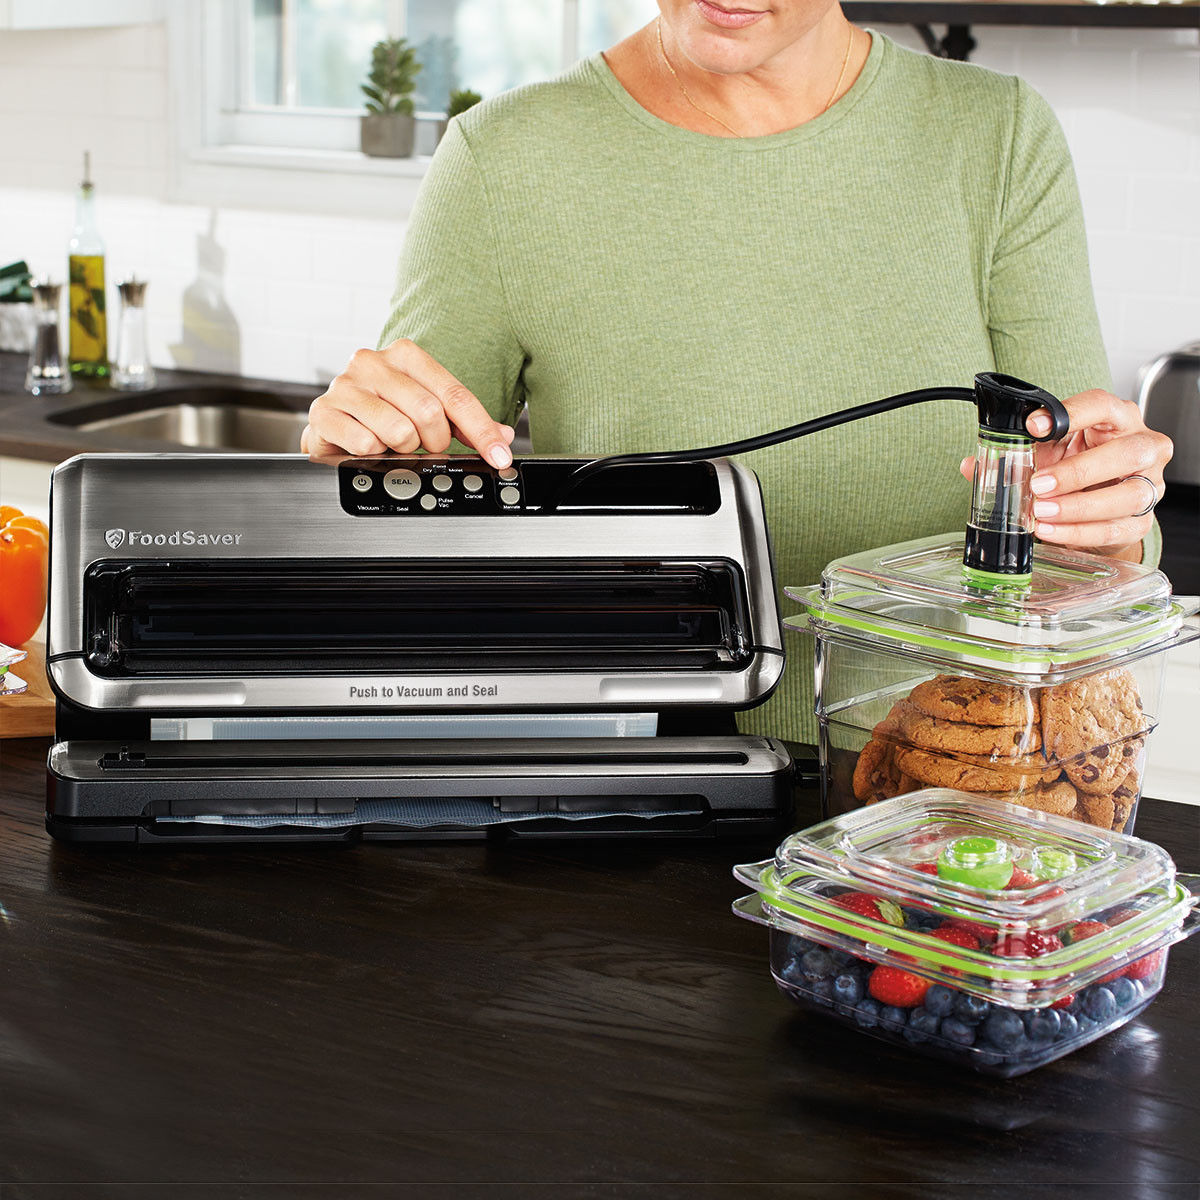 FoodSaver FM5460 2-in-1 Food Preservation System Vacuum Sealer